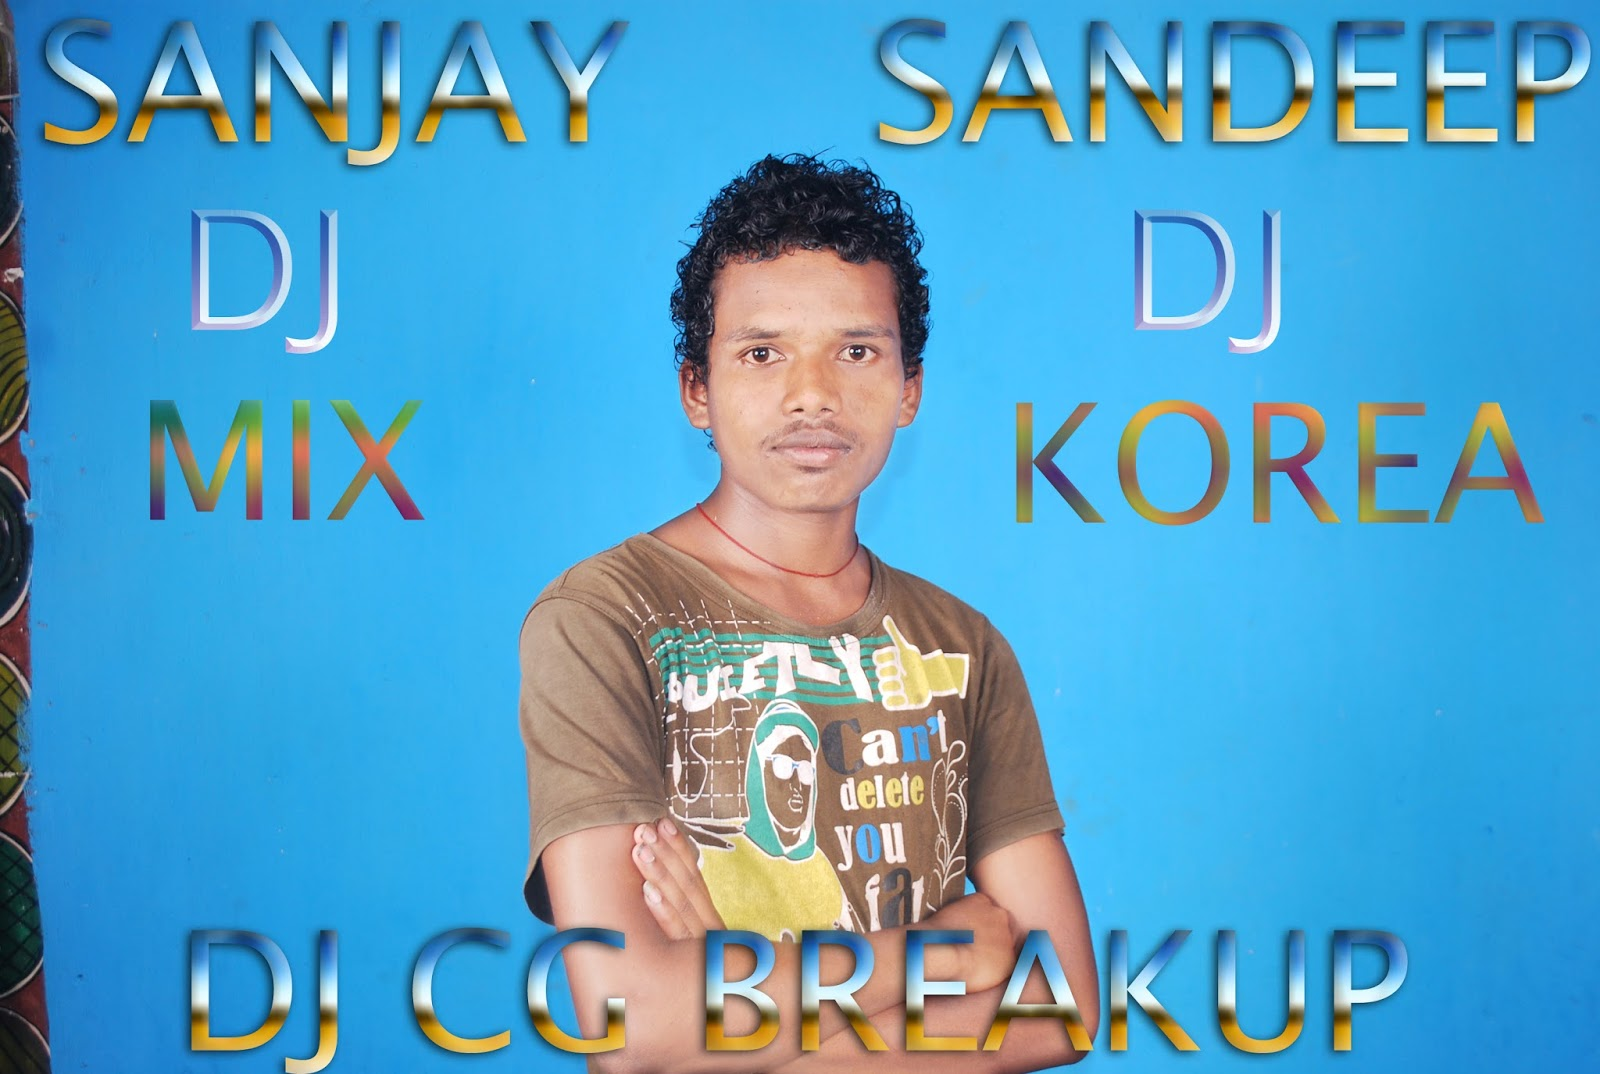 dj cg breakup blogspot com: TOLA CG BASS MIX EXCLUSIVE DJ SANJAY